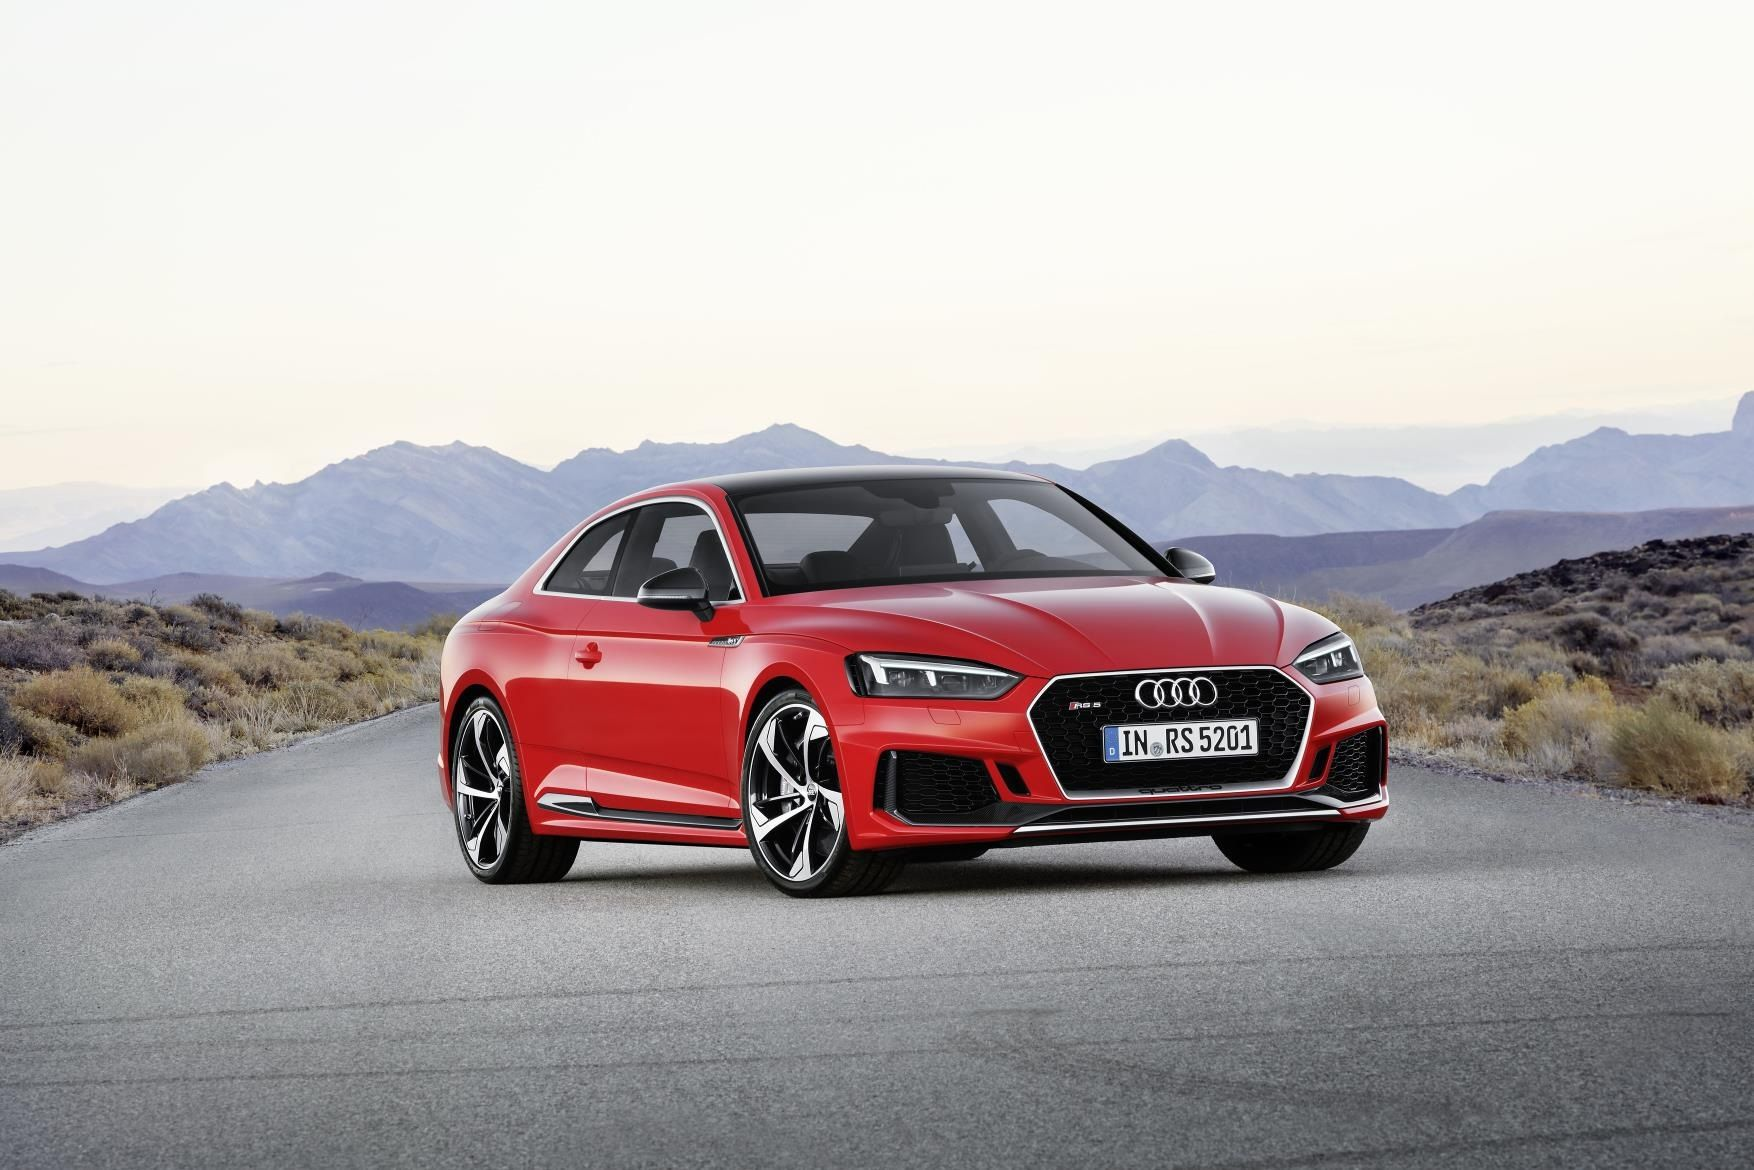 Awesome 2019 Audi Rs5 Coupe Sport Picture Release Date And Review Check More At Http Petrajean Com 2019 Audi Rs5 Coupe Sport Pic Audi Rs5 Audi S5 Rs5 Coupe